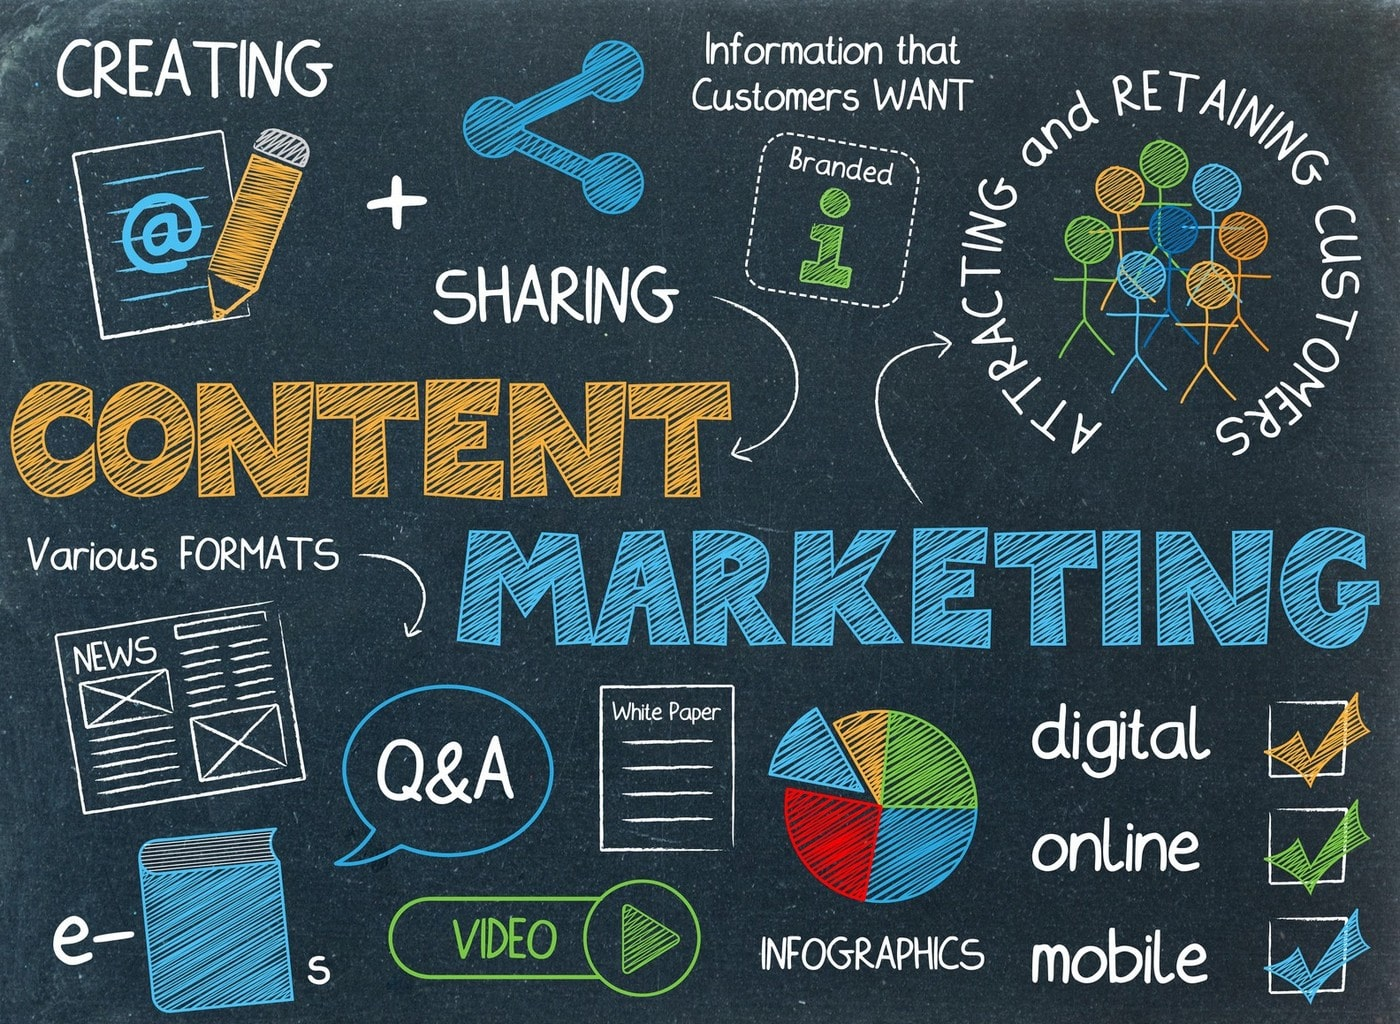 content marketing cos'è - Content Marketing - Content marketing cos'è, 5 errori da non fare